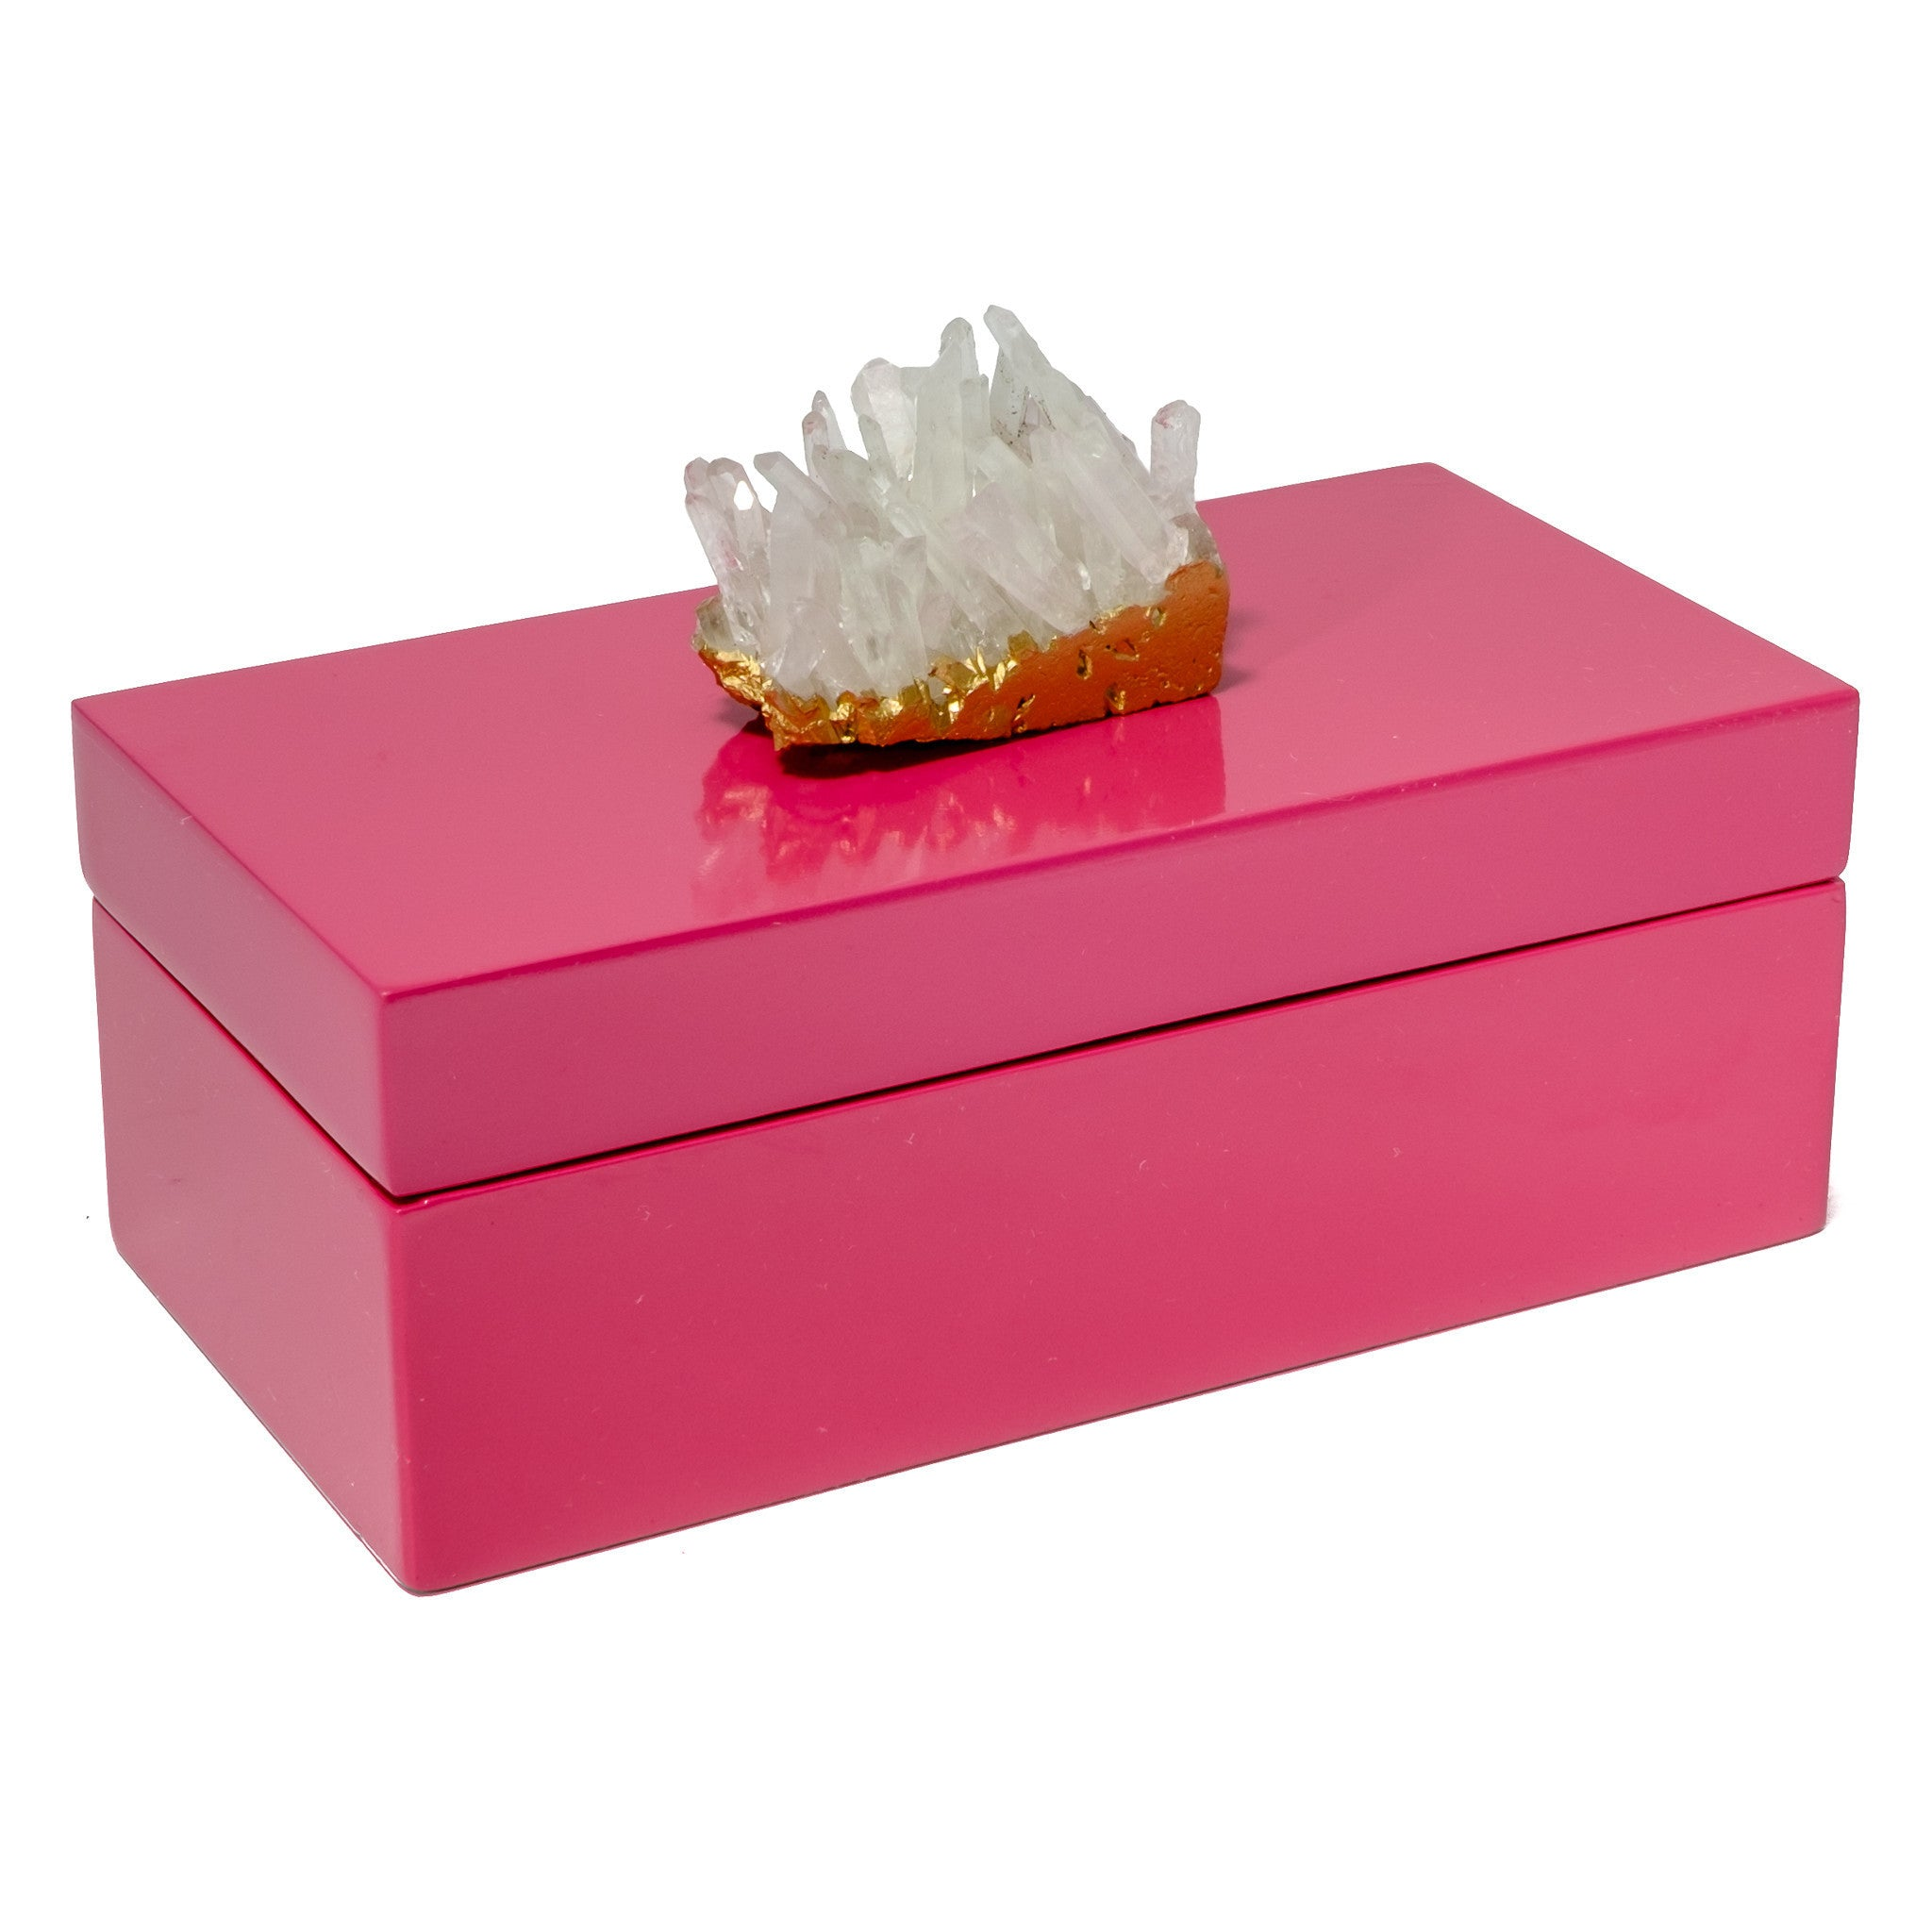 Medium Pink Lacquer Box with Himalayan Crystal